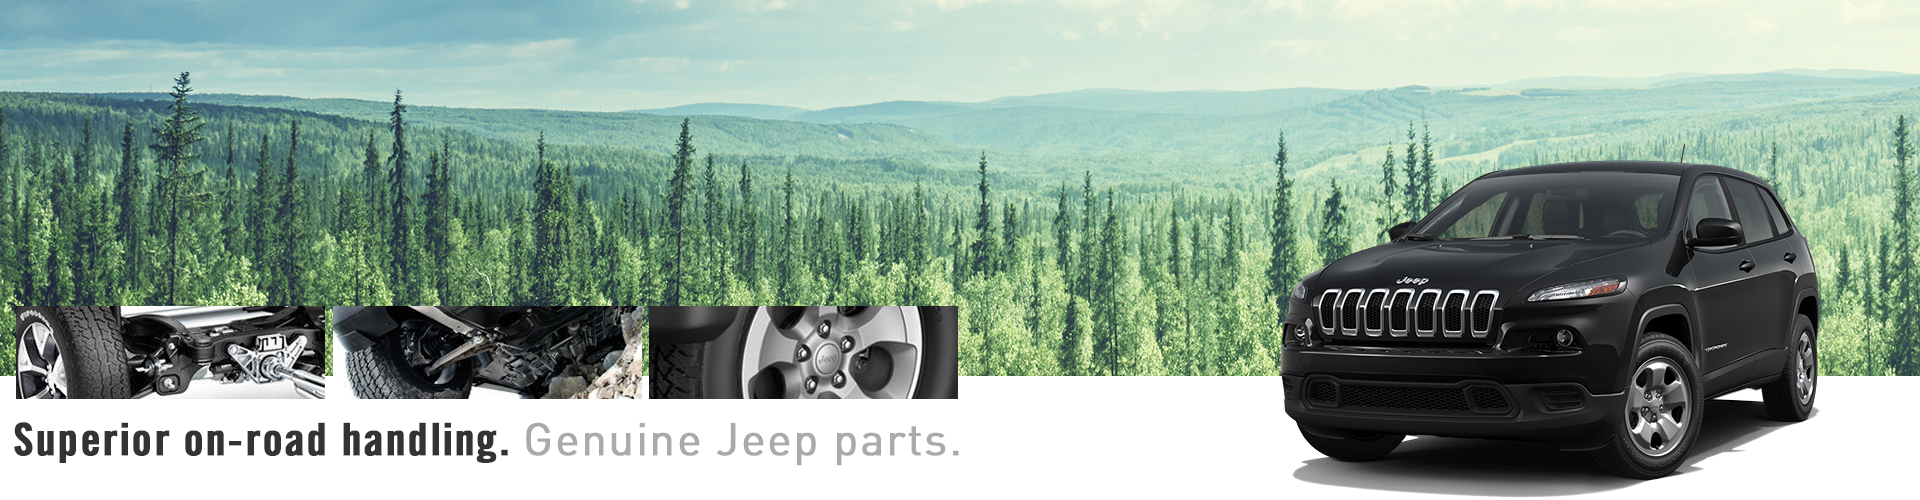 GREAT LAKES CHRYSLER PARTS Banner 1